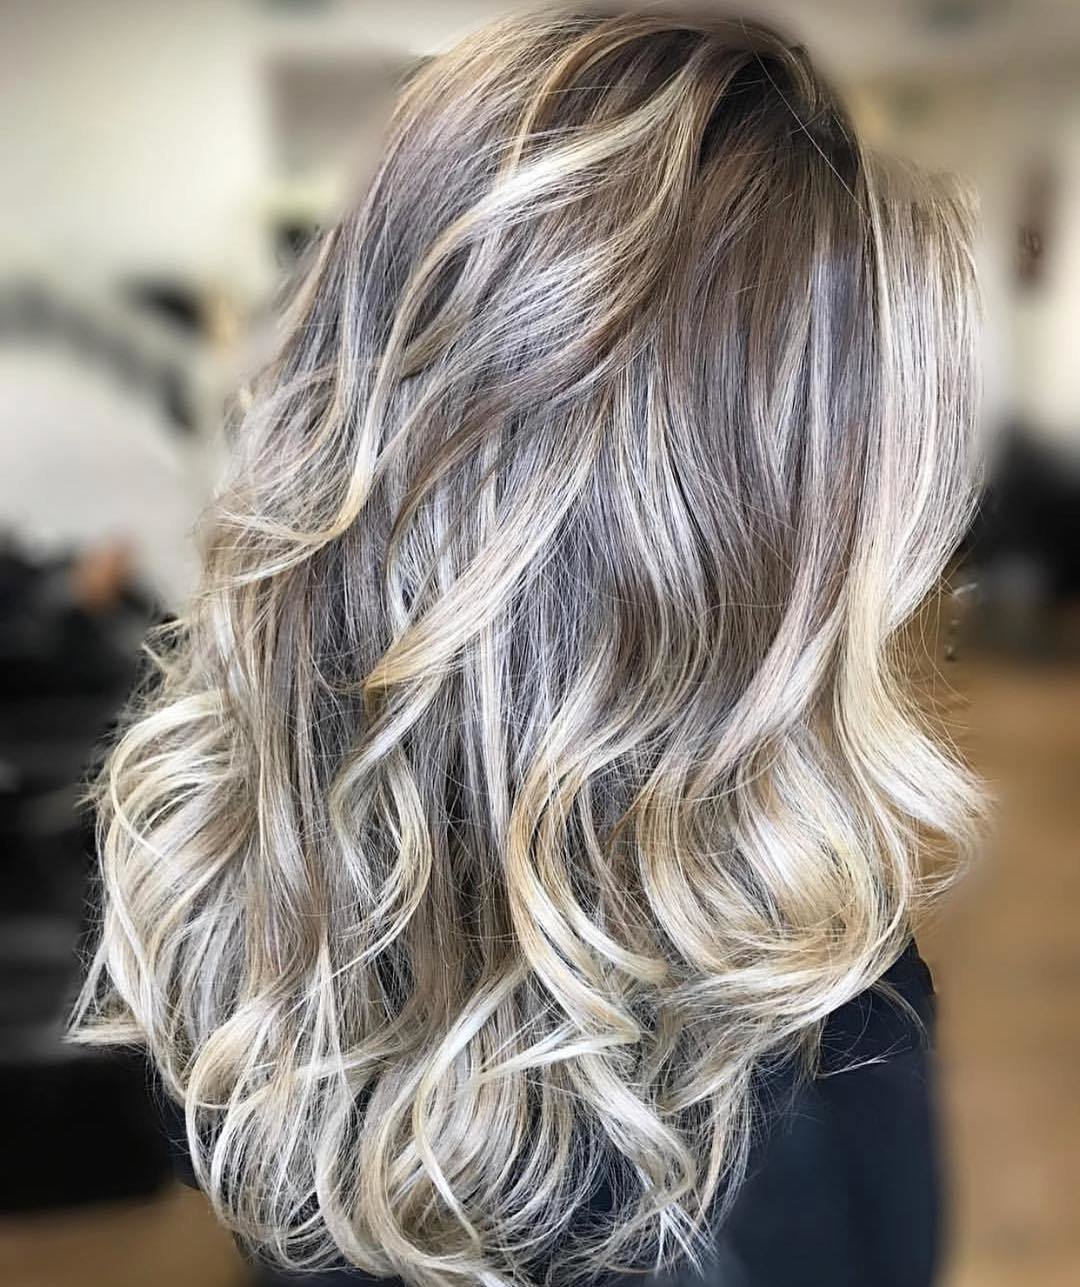 The Best Balayage 101 The Fullest Guide To Balayage Hair Pictures